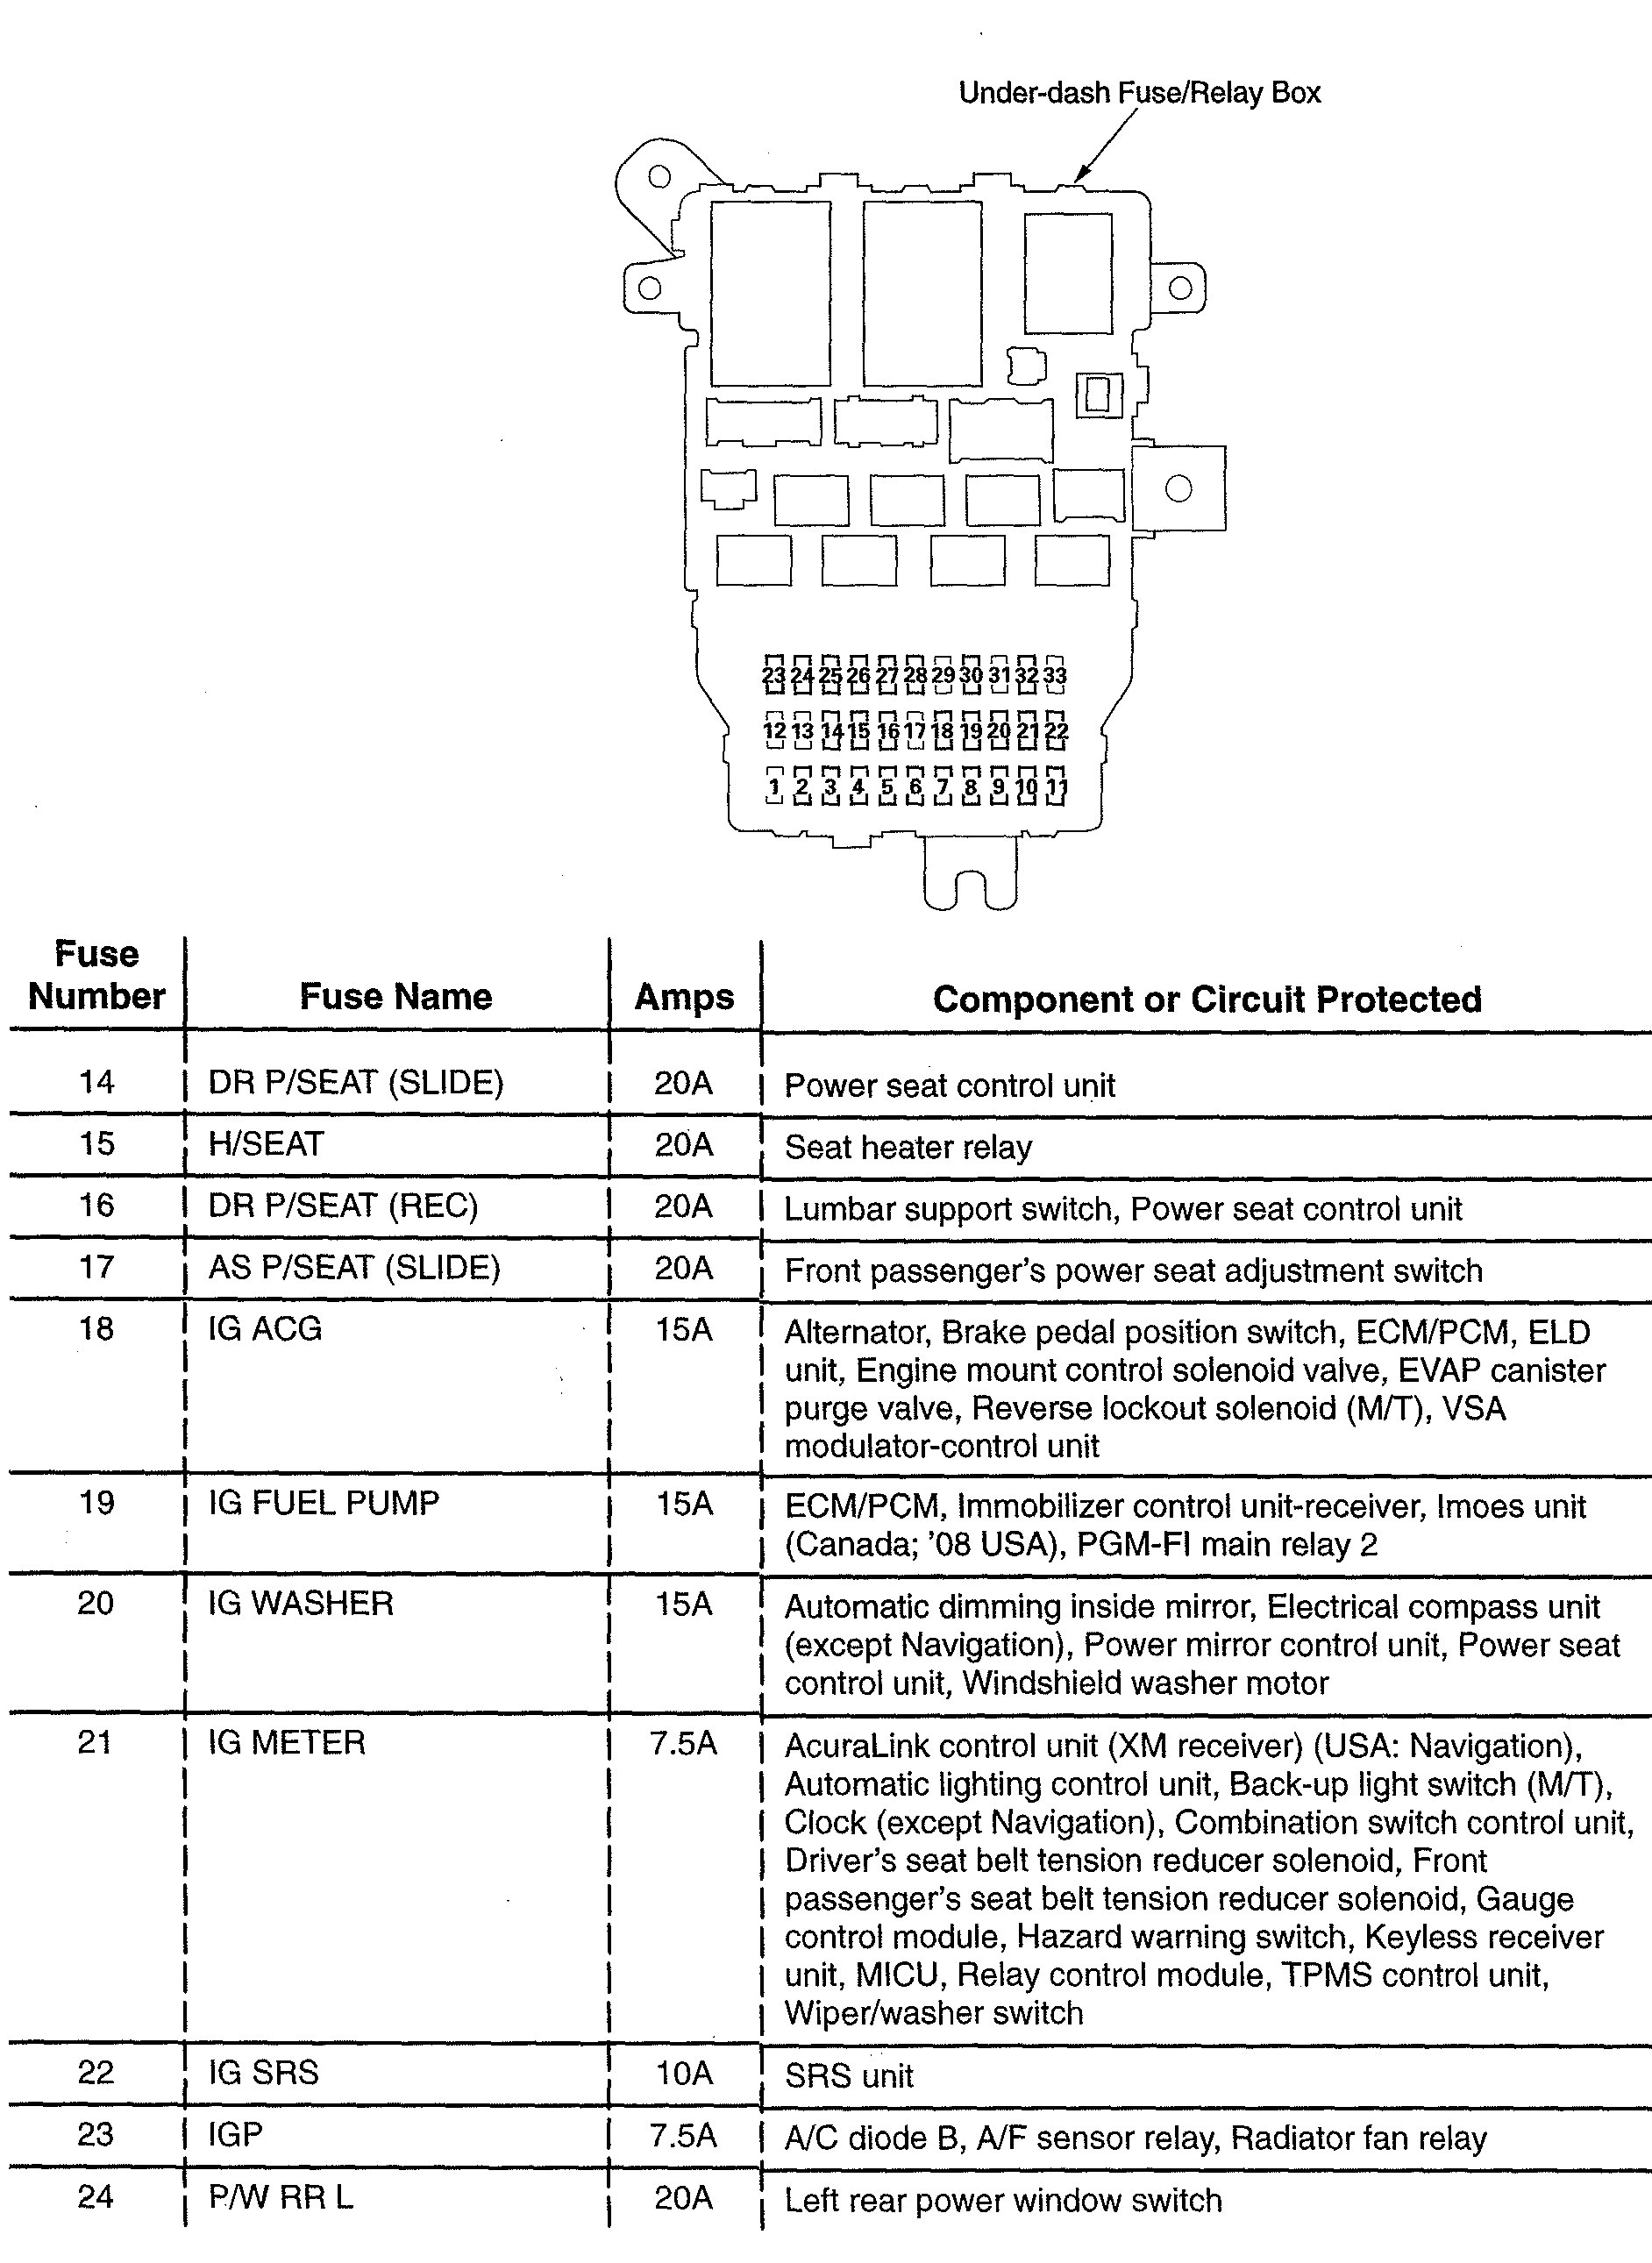 acura tl wiring diagram fuse panel 2 2008 acura tl (2008) wiring diagrams fuse panel carknowledge 2007 acura tl wiring diagram at gsmx.co